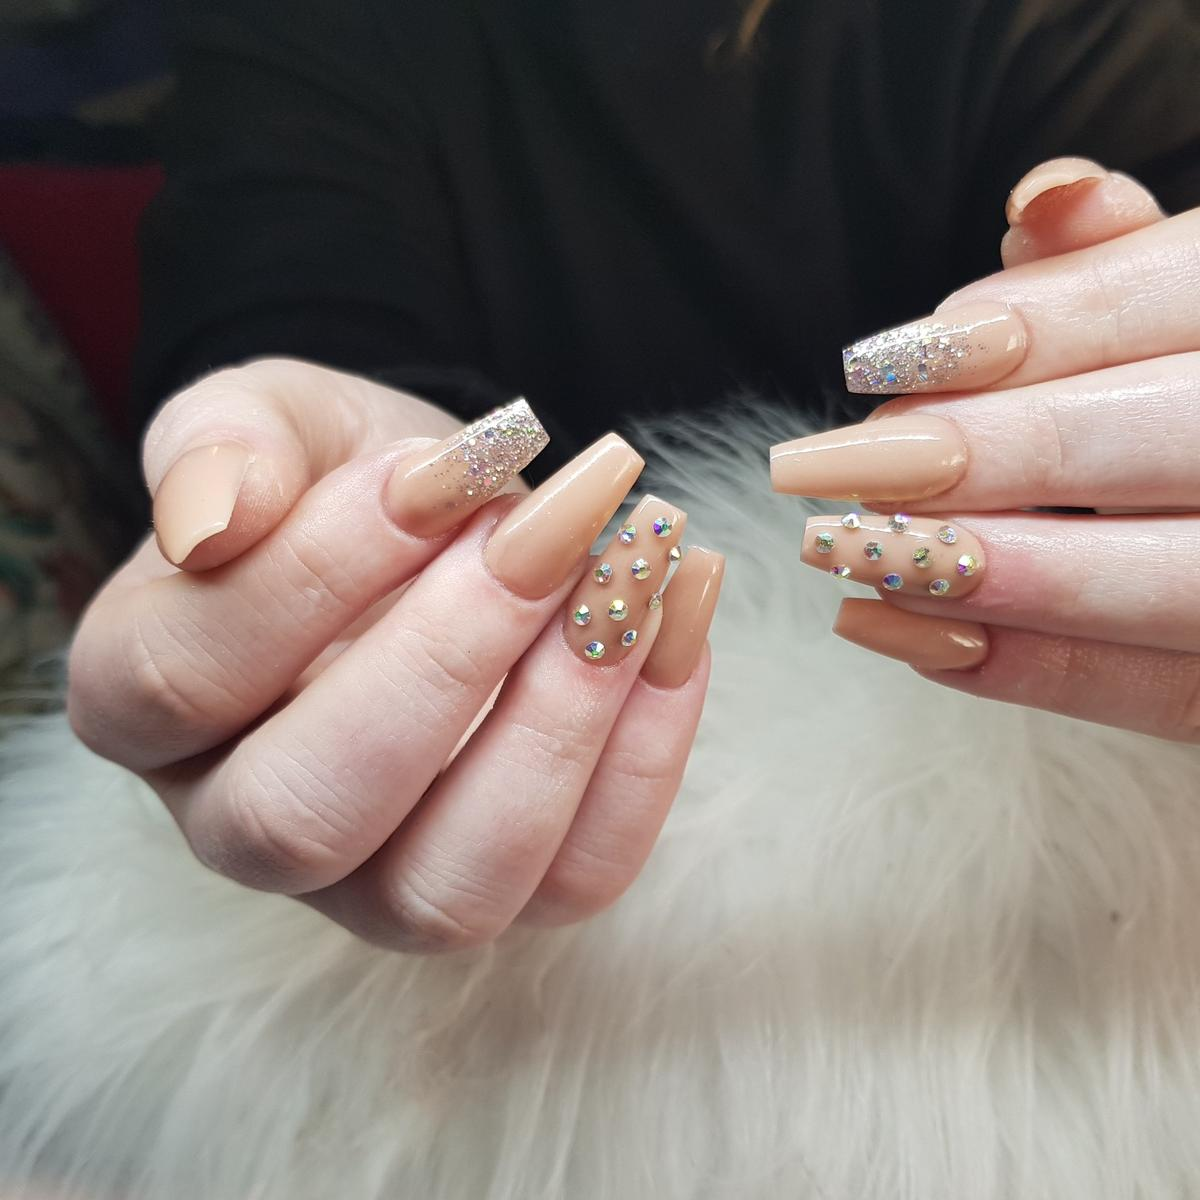 mobile nail tech up to 3o mins drive from cv9 3rg ..atherstone ... acrylics start from £25 plus £5 travel no offers please ...if I don't reply please use the links below as I don't know why I'm getting restricted 👇 insta loulabellesnailsandbeauty Facebook Vicki Middleton (Persian cat picture) mobile 07447184186 ....thanks !!